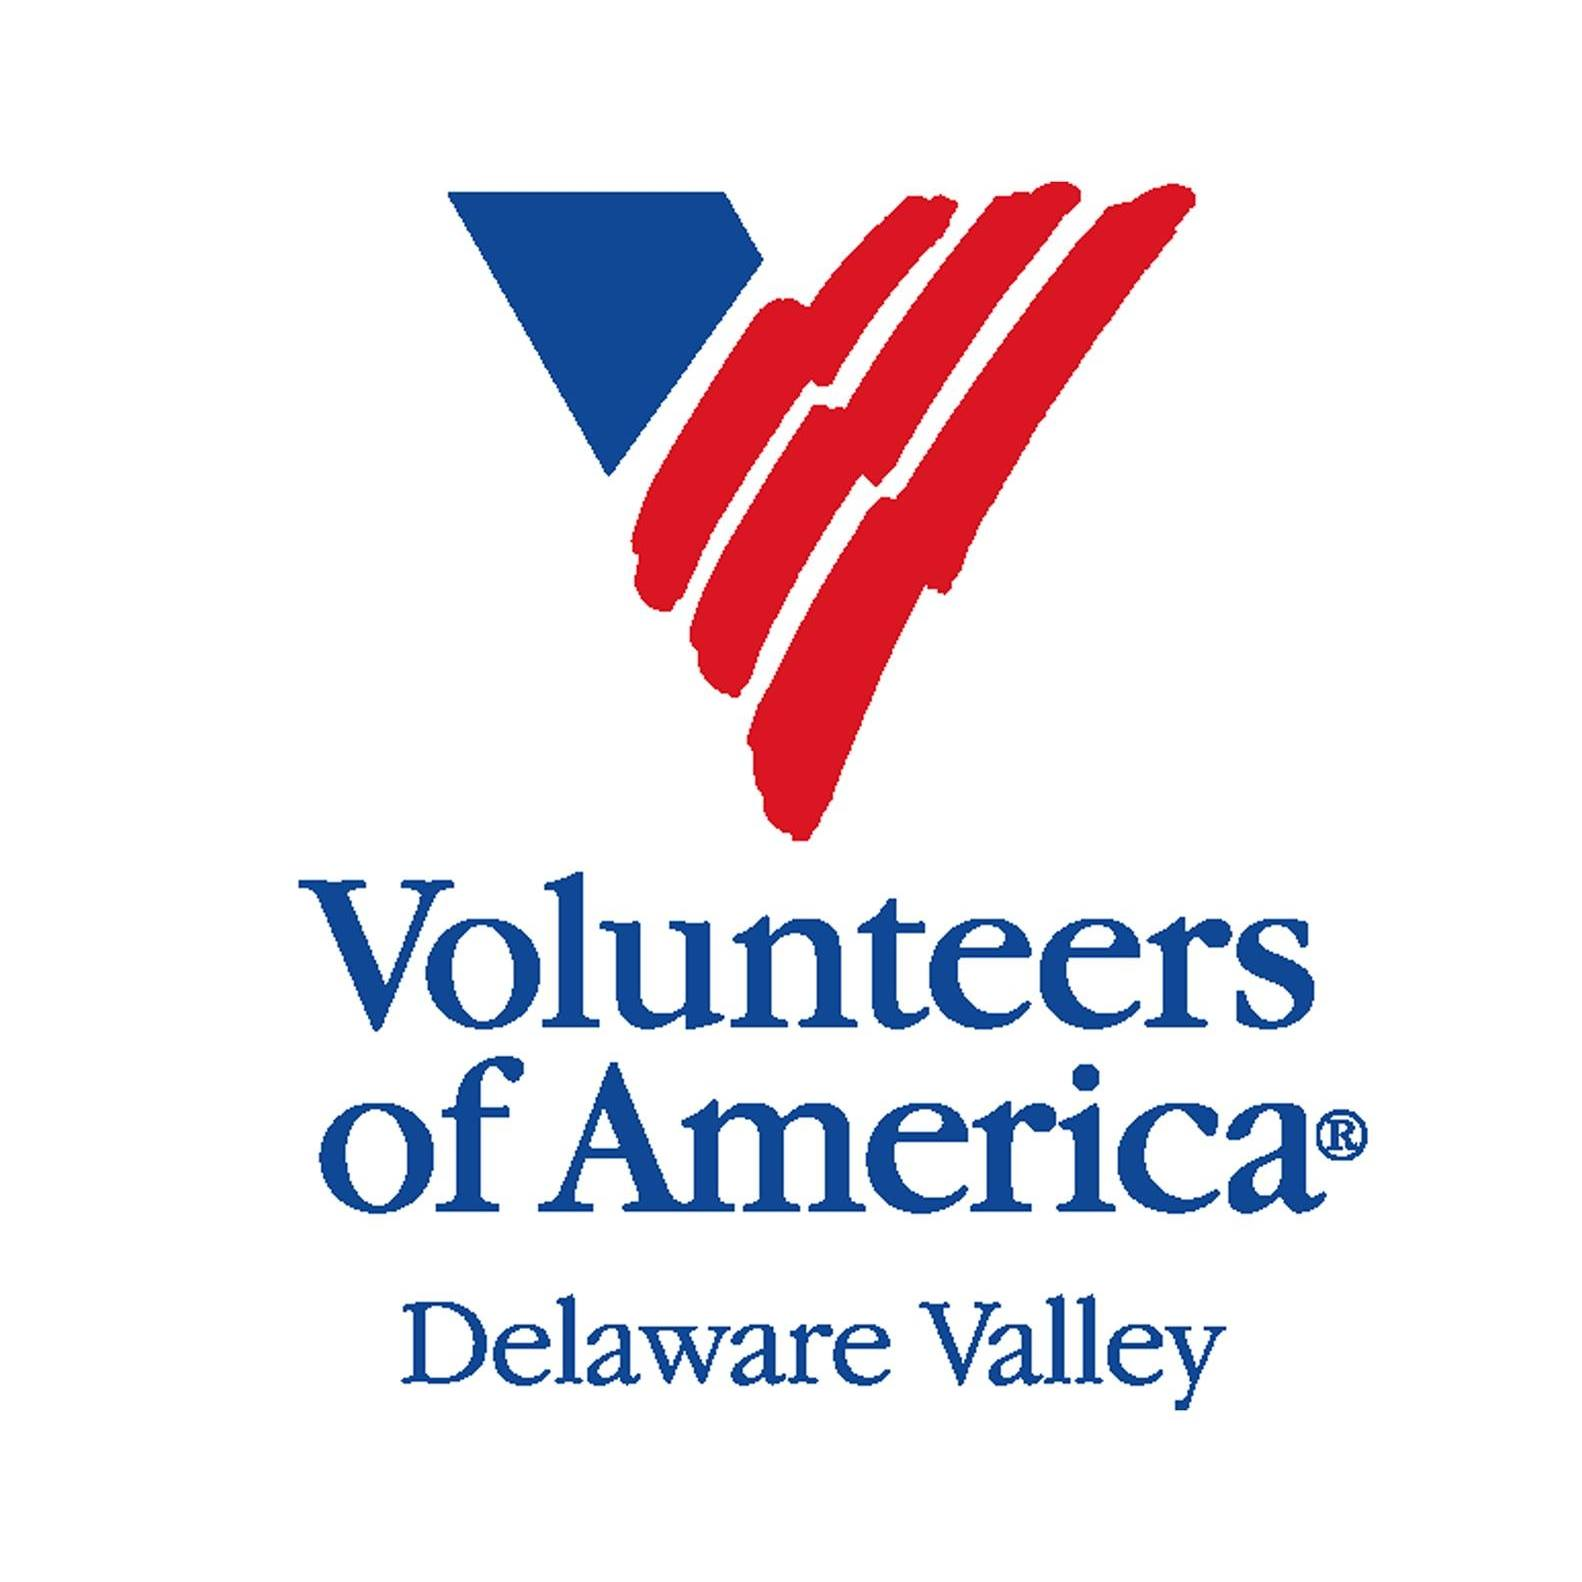 Volunteers of America Delaware Valley